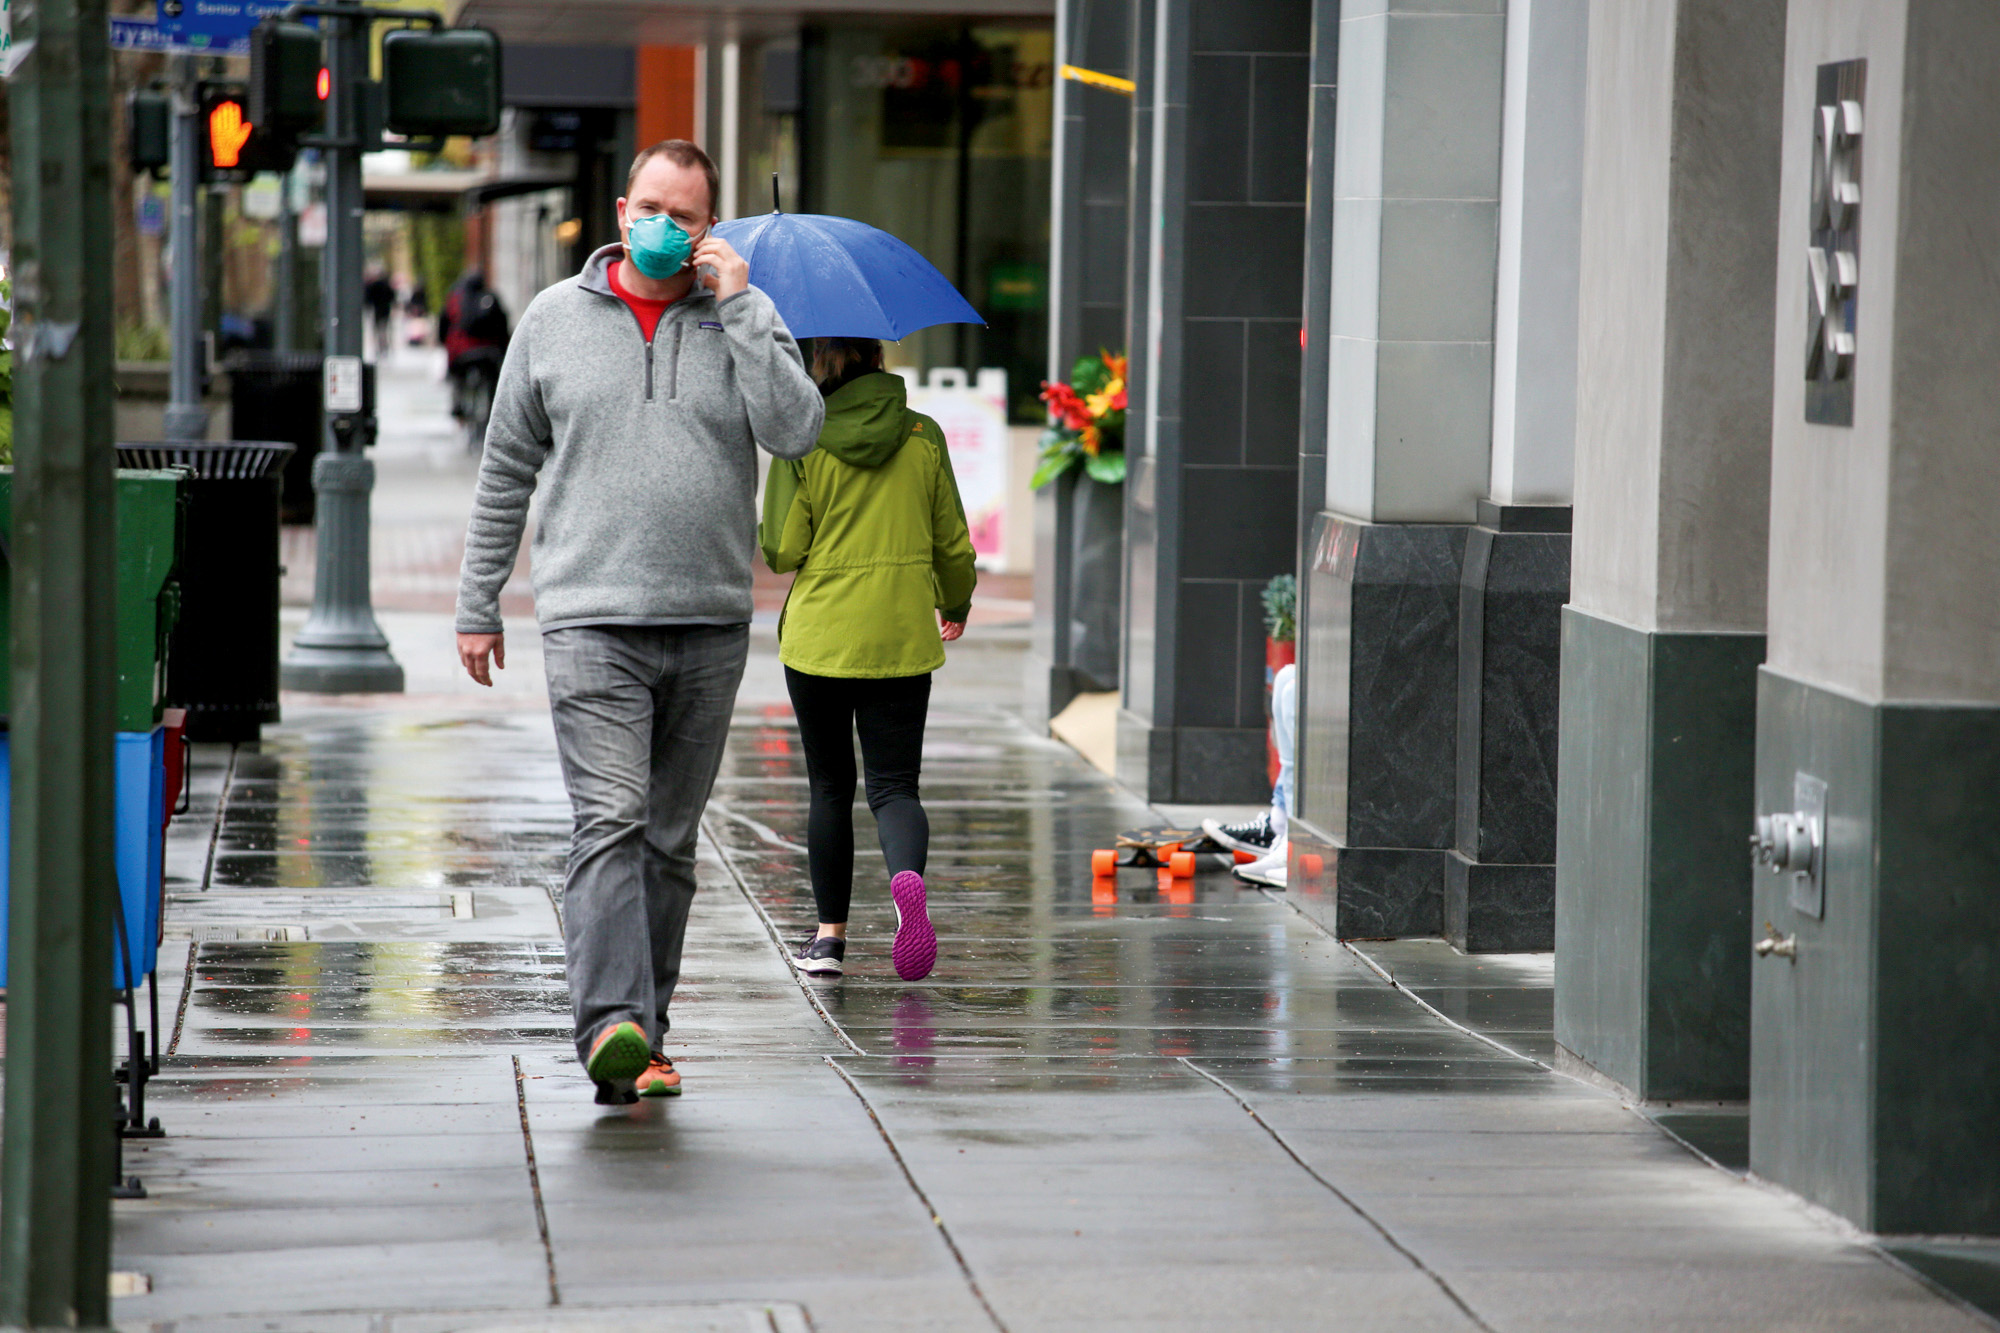 Pedestrians, one wearing a mask as protection from the coronavirus, walk down an unusually quiet University Avenue in Palo Alto after a shutdown order took effect on March 17. Photo by Sammy Dallal.